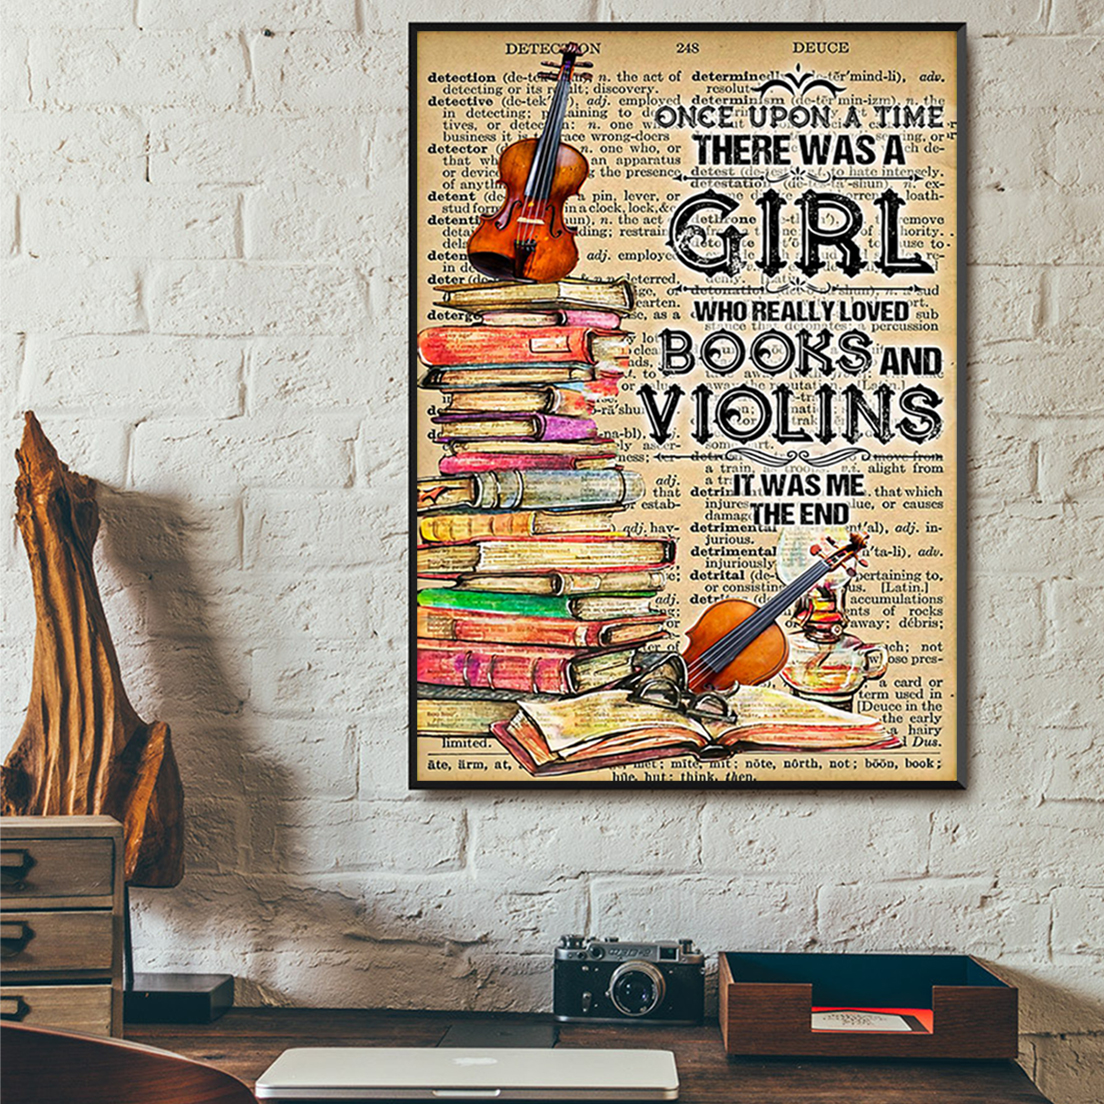 Once upon a time there was a girl who really loved books and violins poster A3